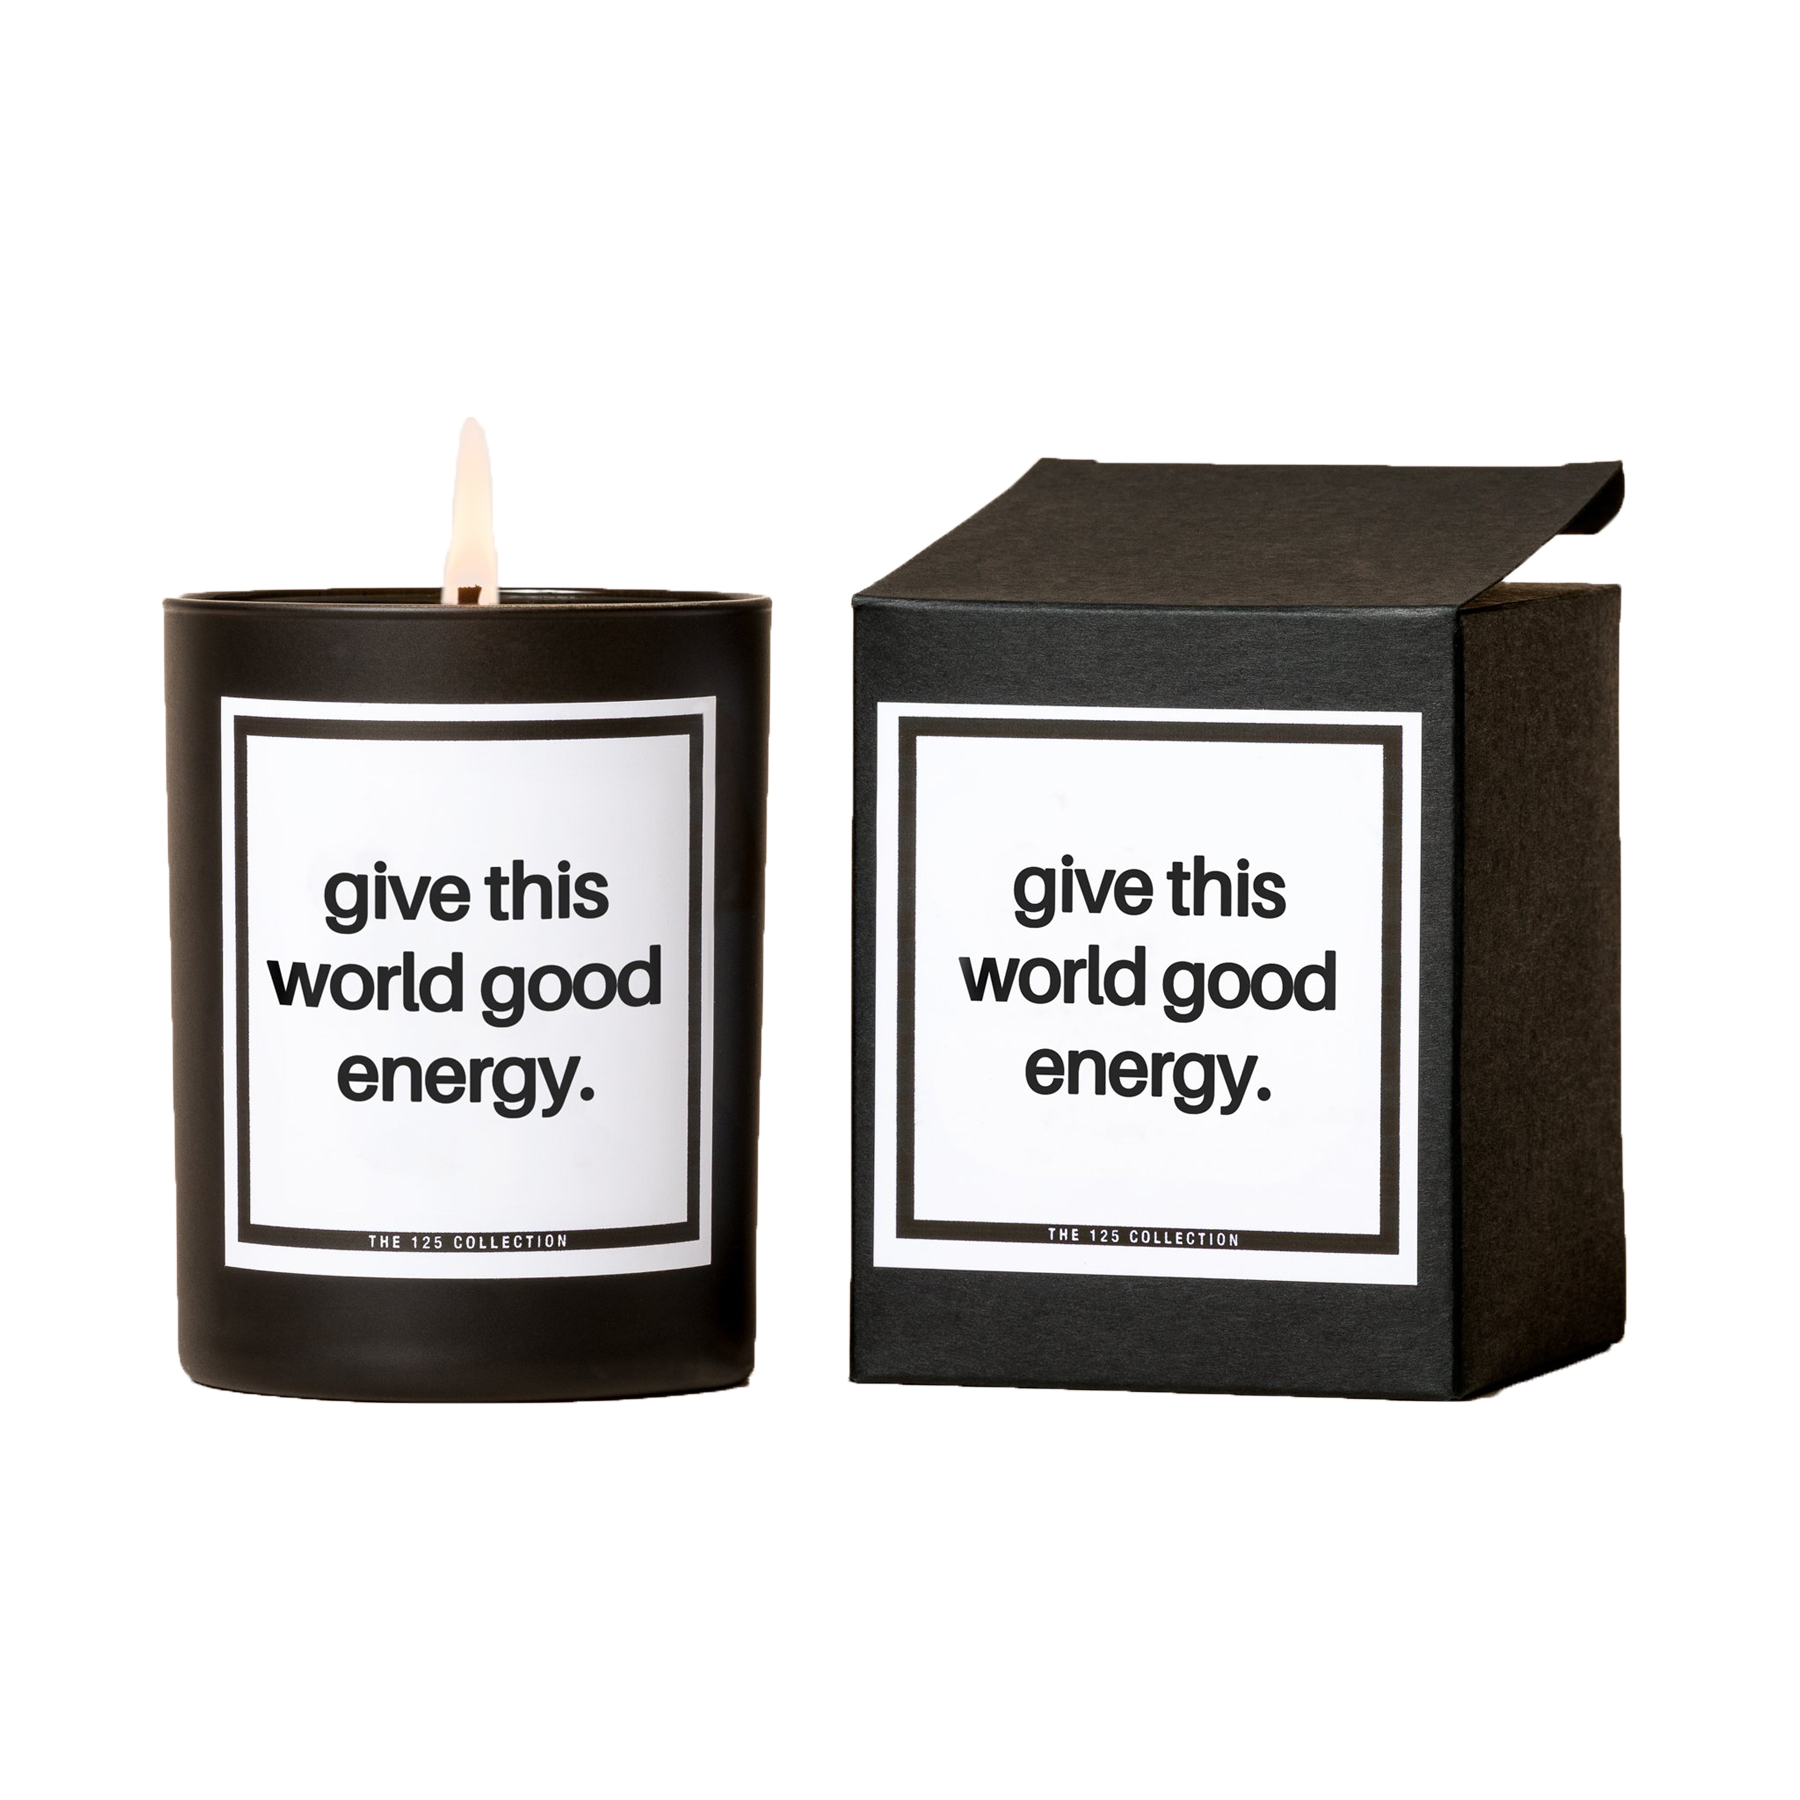 Best housewarming gifts - 125 collection candle